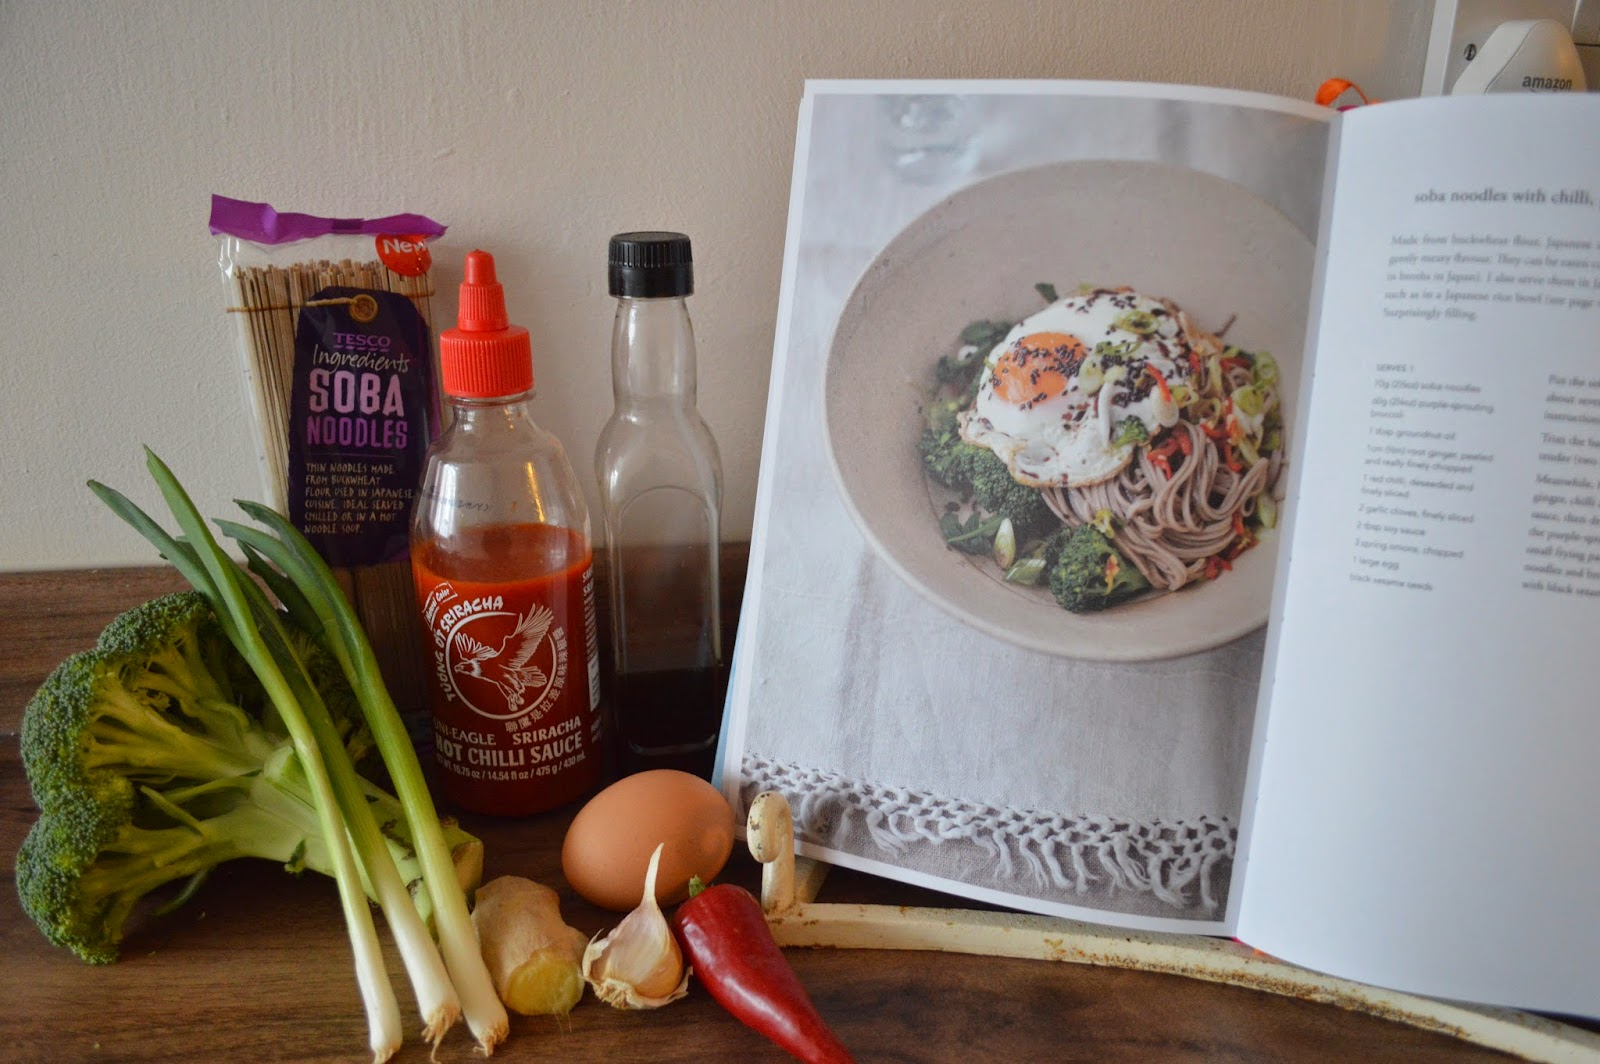 Diana Henry, A Change of Appetite, Soba Noodles, Cooking ingredients, Cookbook Review Broccoli noodles, Sriracha sauce, gingey bites